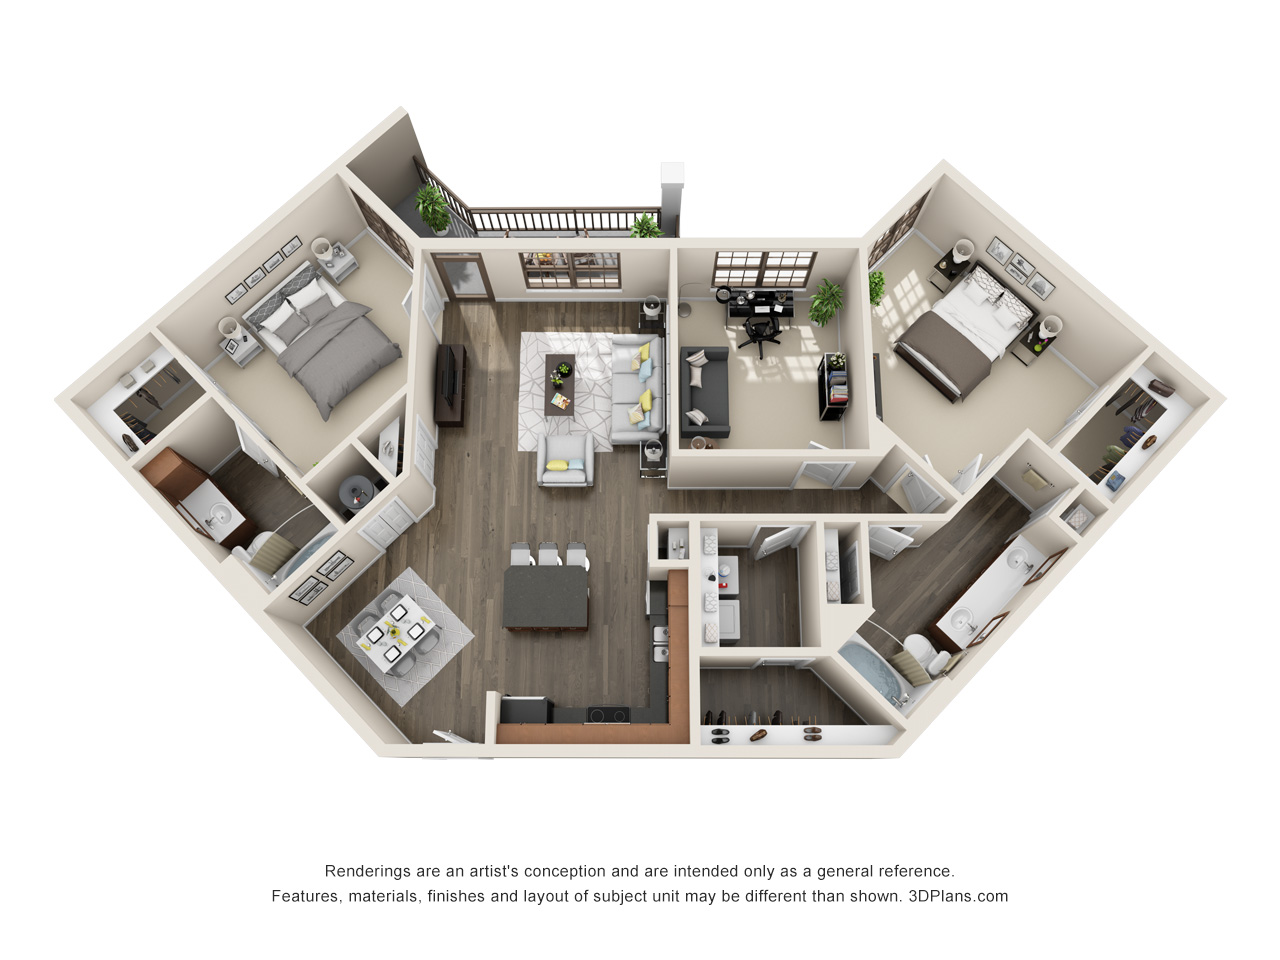 The Lexington Dillworth 2 bedroom/2 bath + study THE FORSYTHE floorplan